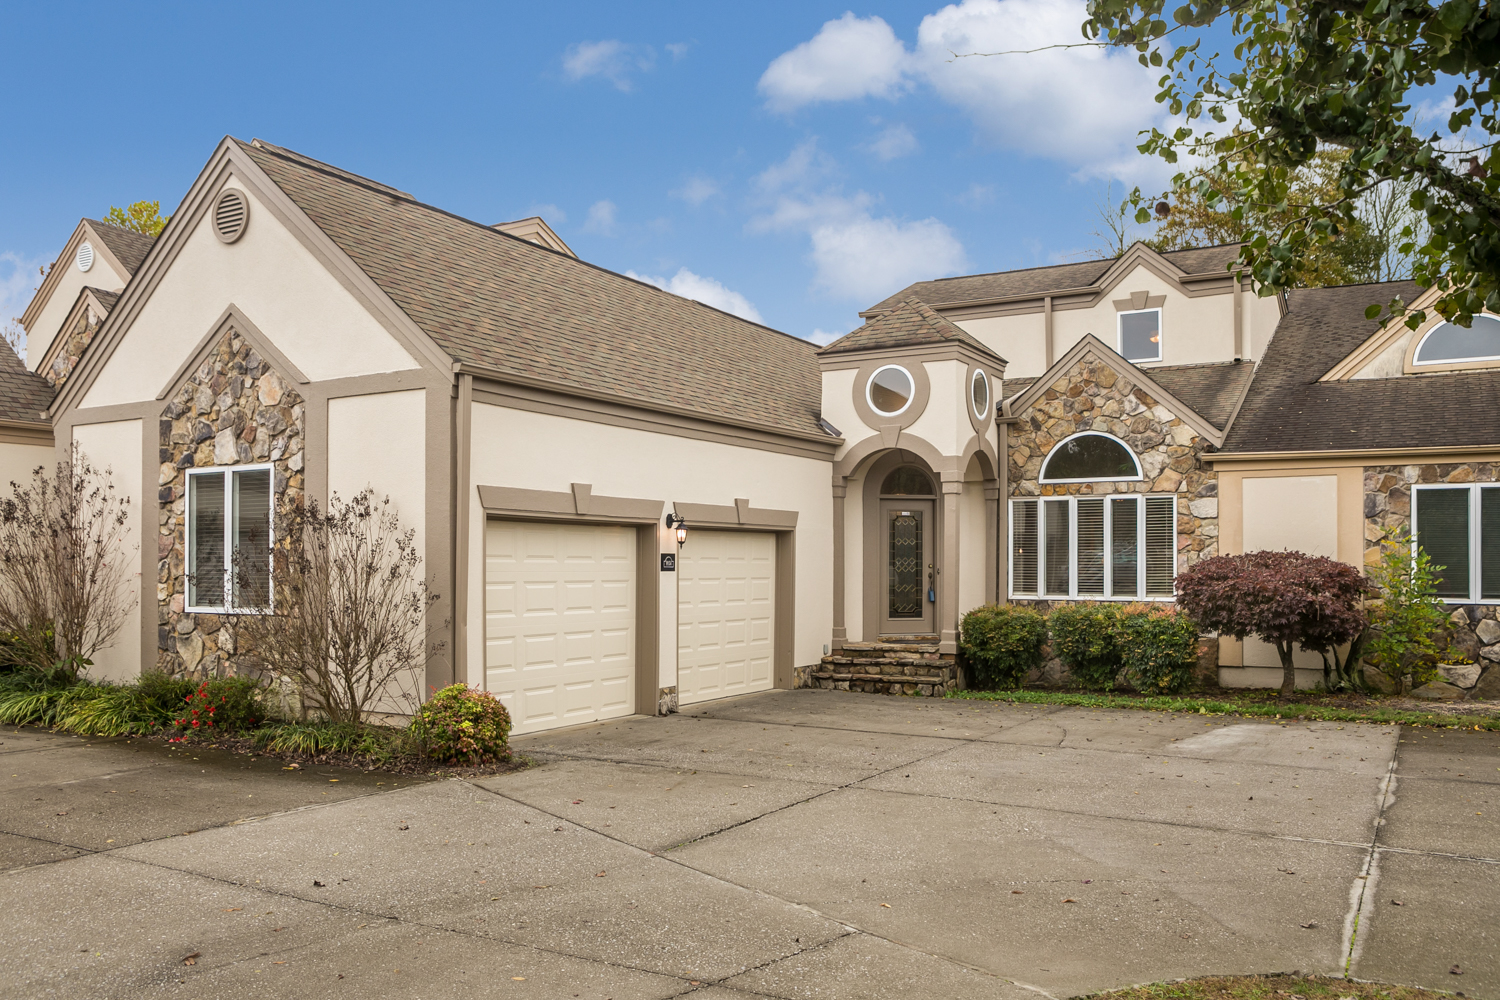 9934 Cattails Meadow Lane, Ooltewah, Tennessee 37363